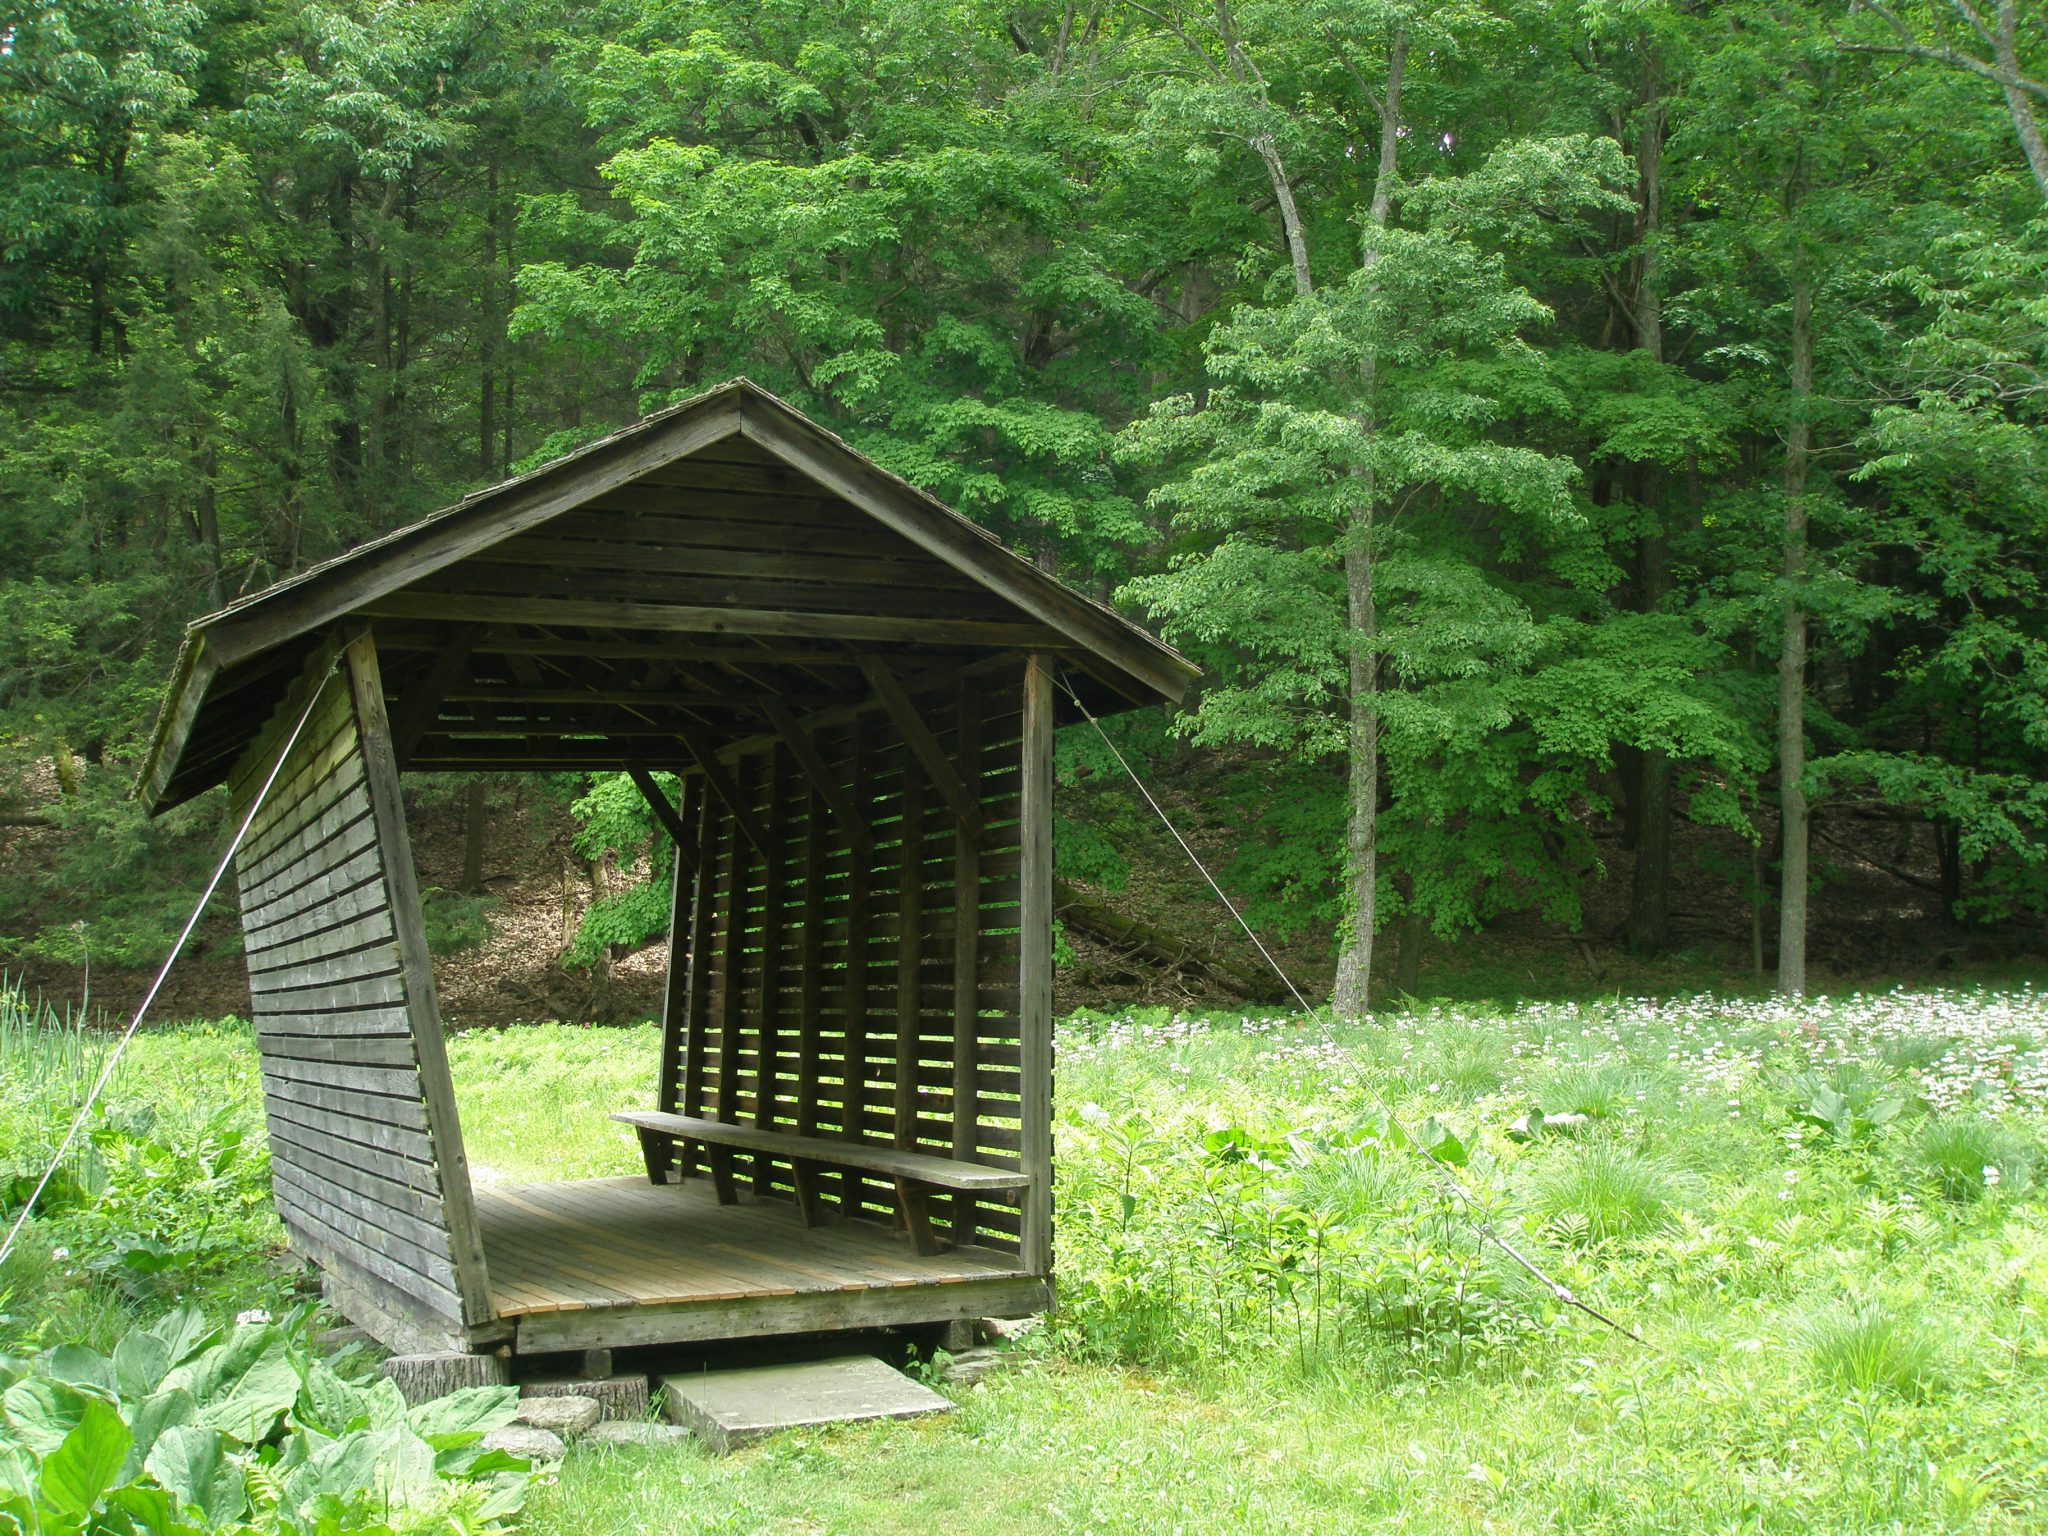 How to recycle a corn crib